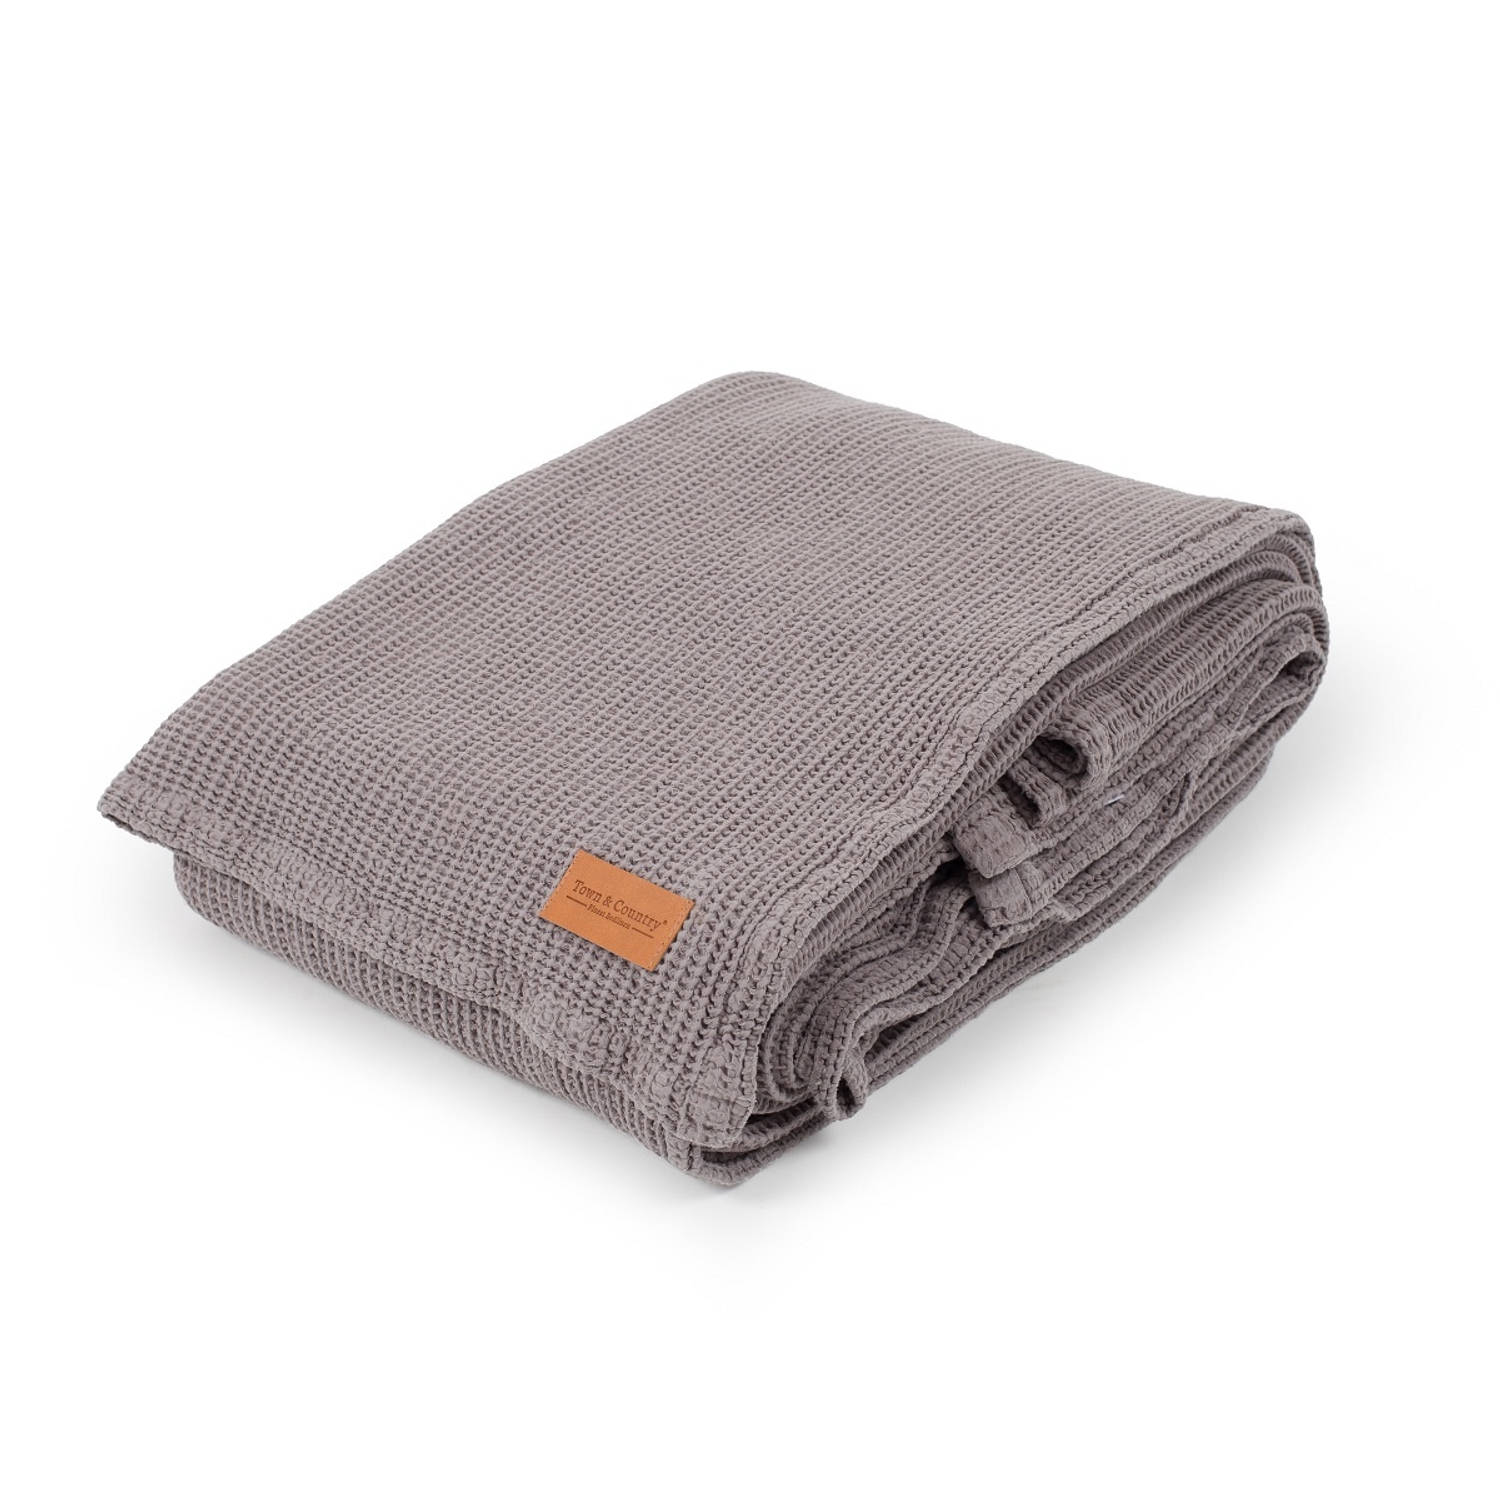 Korting Town en Country Bedsprei Dexter Dobby Taupe 2 Persoons Bedsprei 260 X 260 Cm